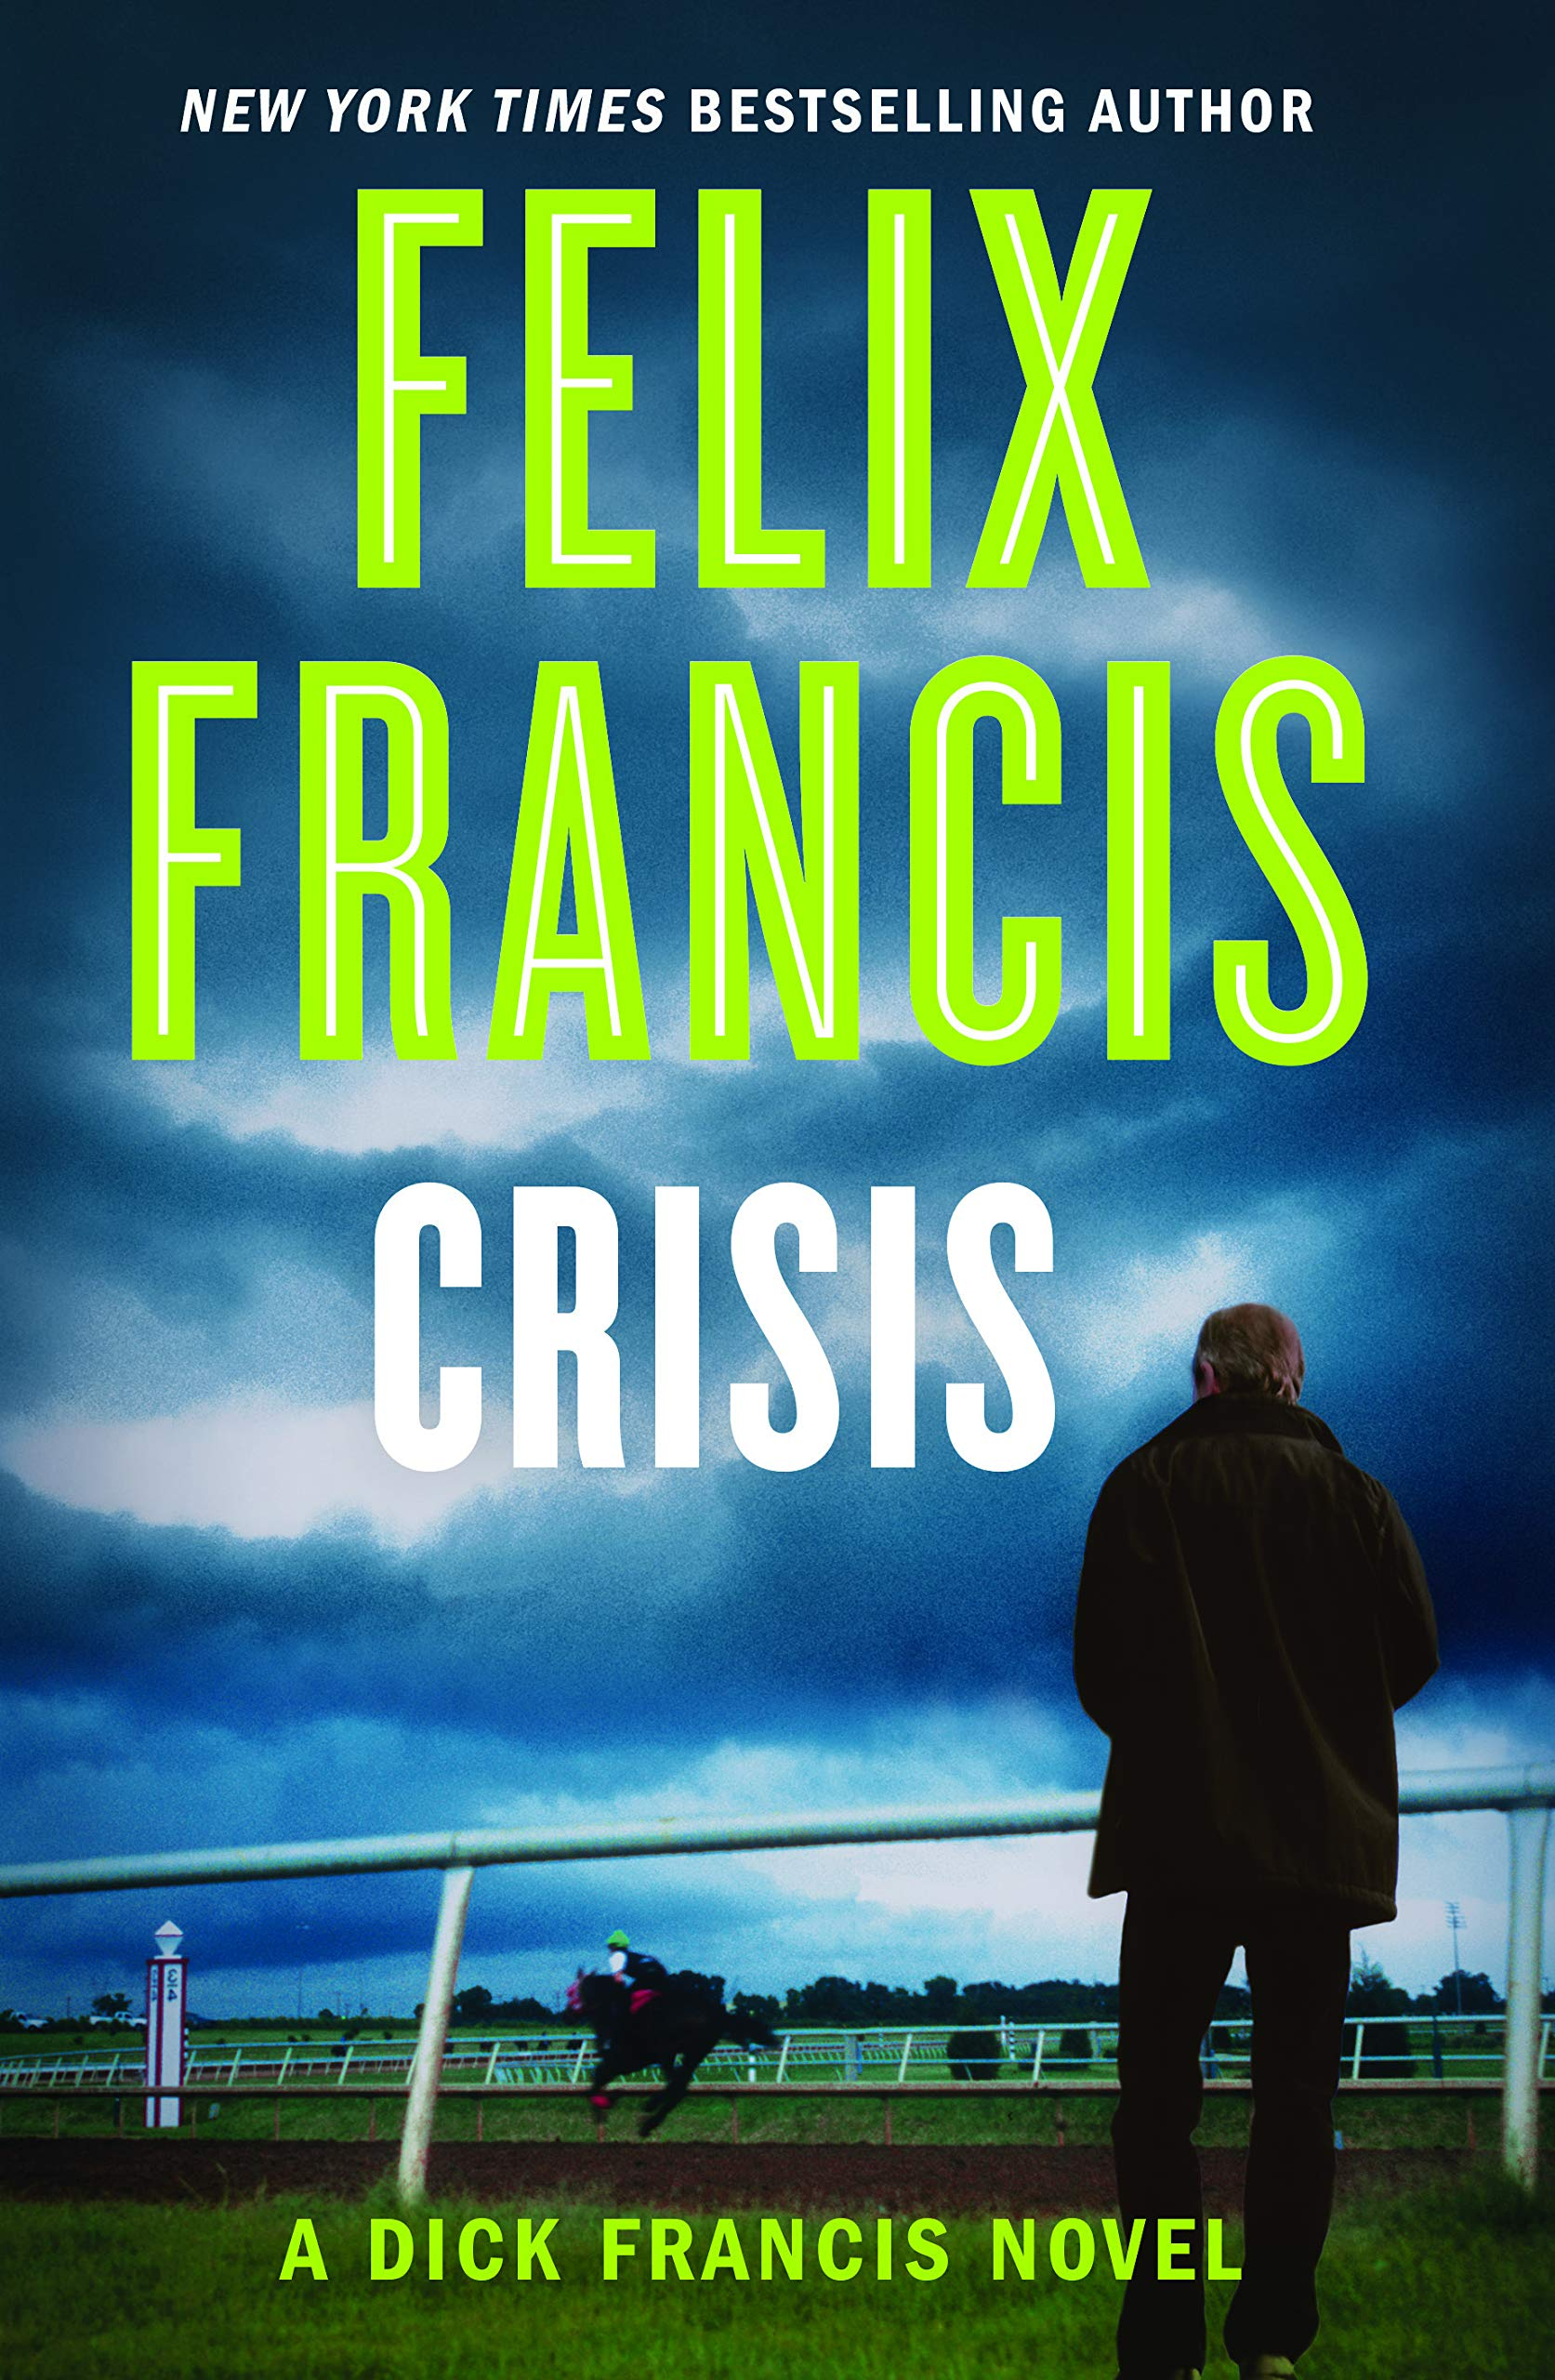 Dick francis large print knows it